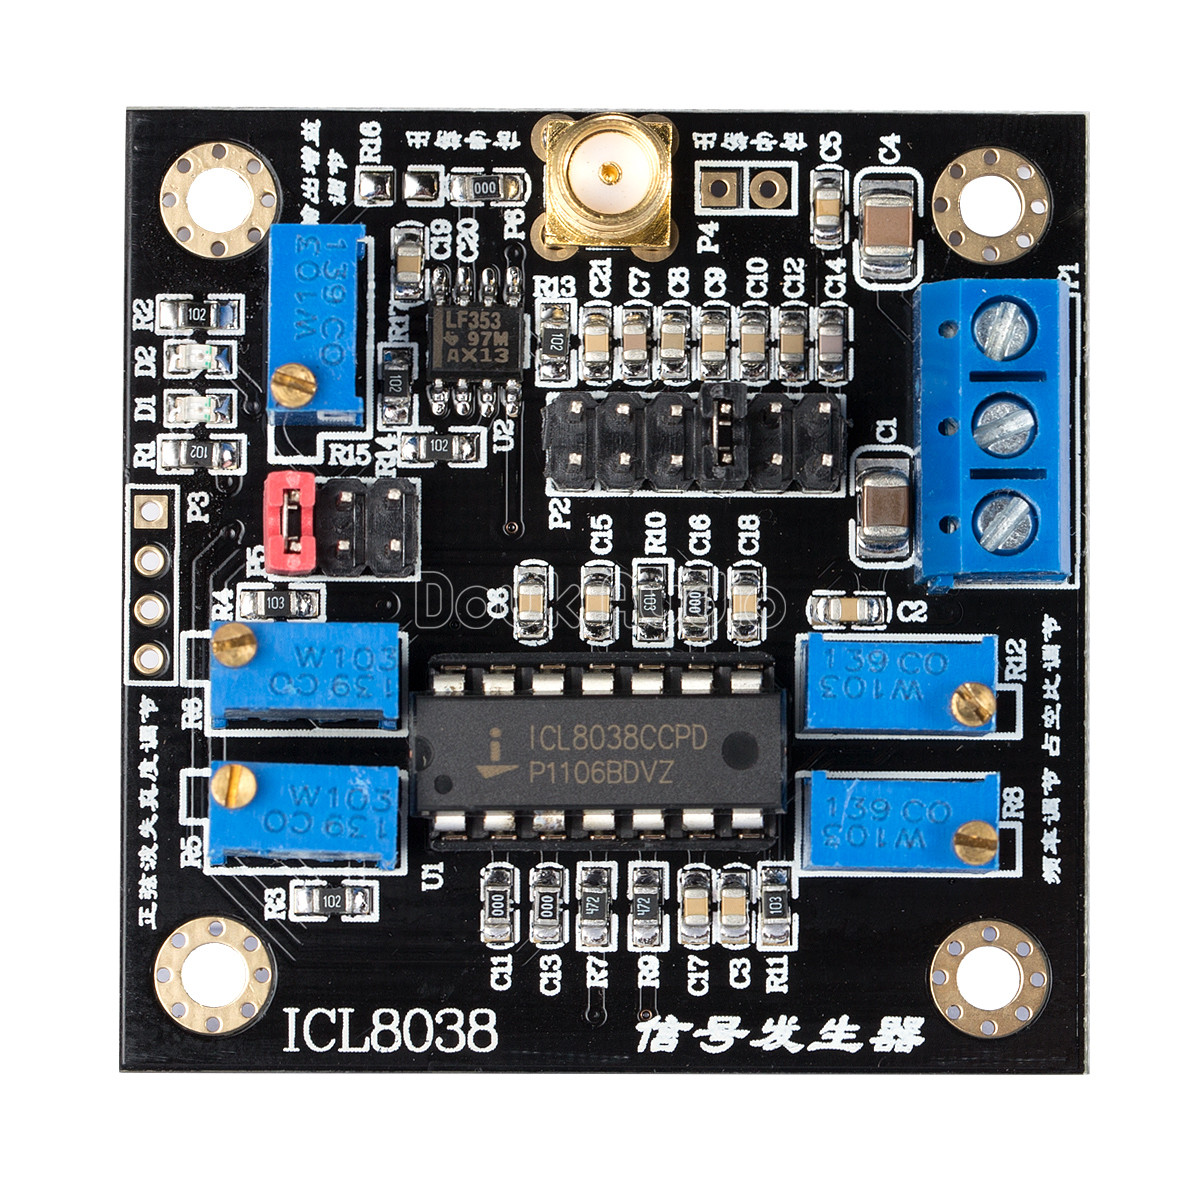 Icl8038 Low Frequency Signal Generator Module Sine Square Triangle Triangular Wave Circuit Sources